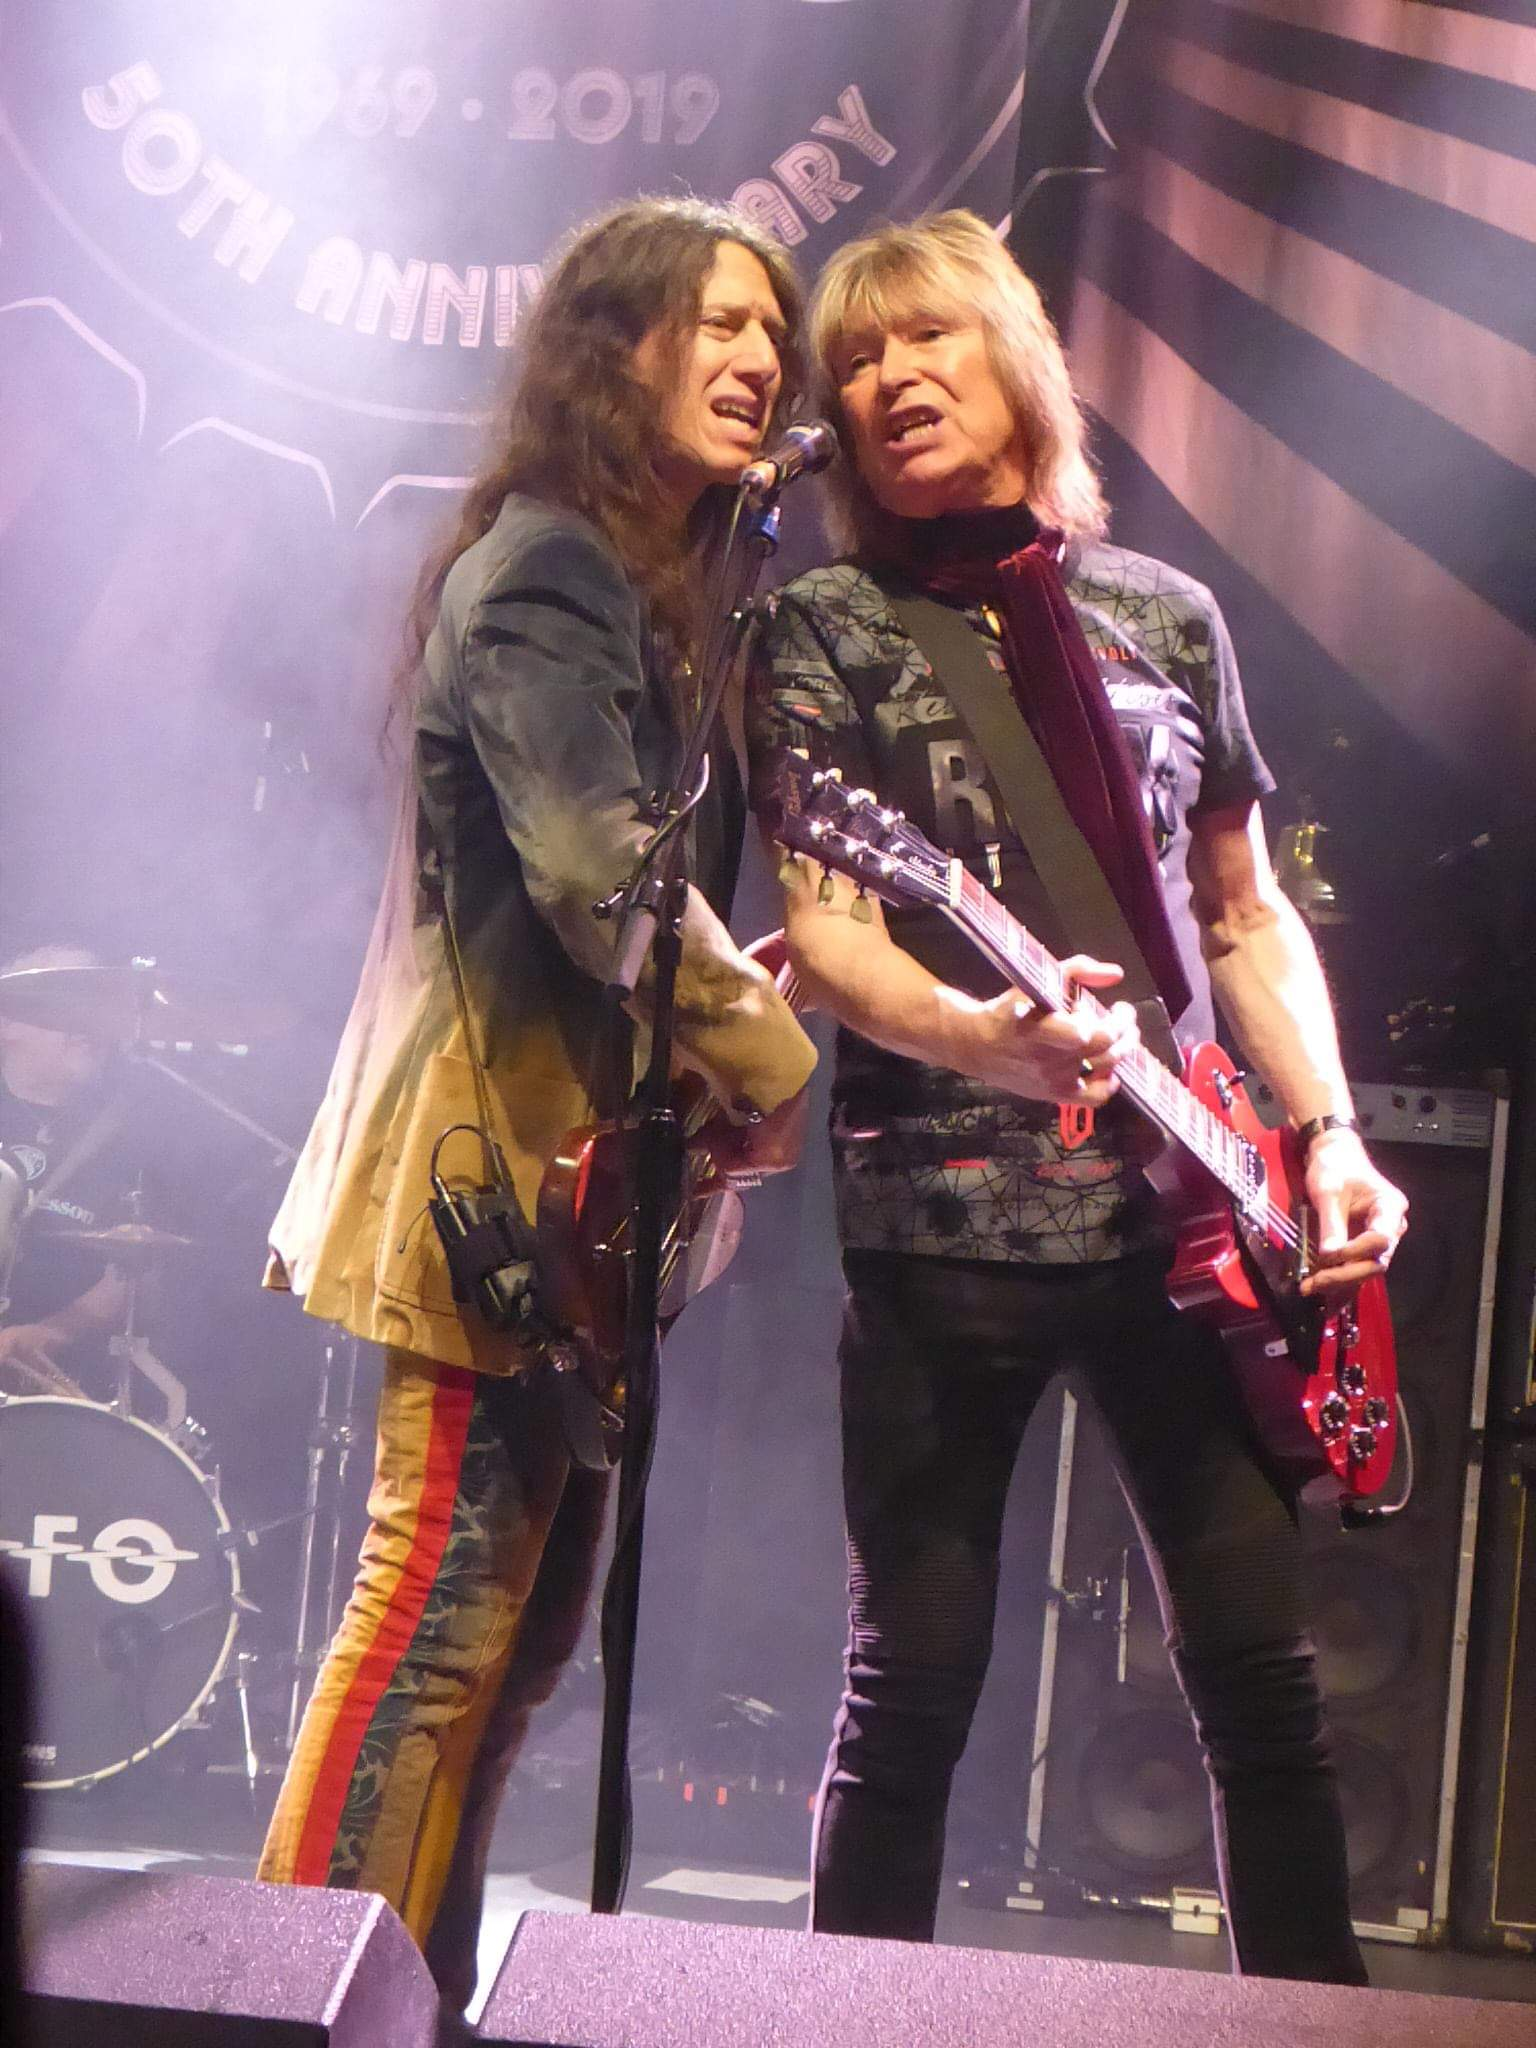 Apparently one of the last photo's taken of UFO and Paul rockin' at the O2 Forum Kentish Town London, April 5th, 2019 - pic by Andy Nathan